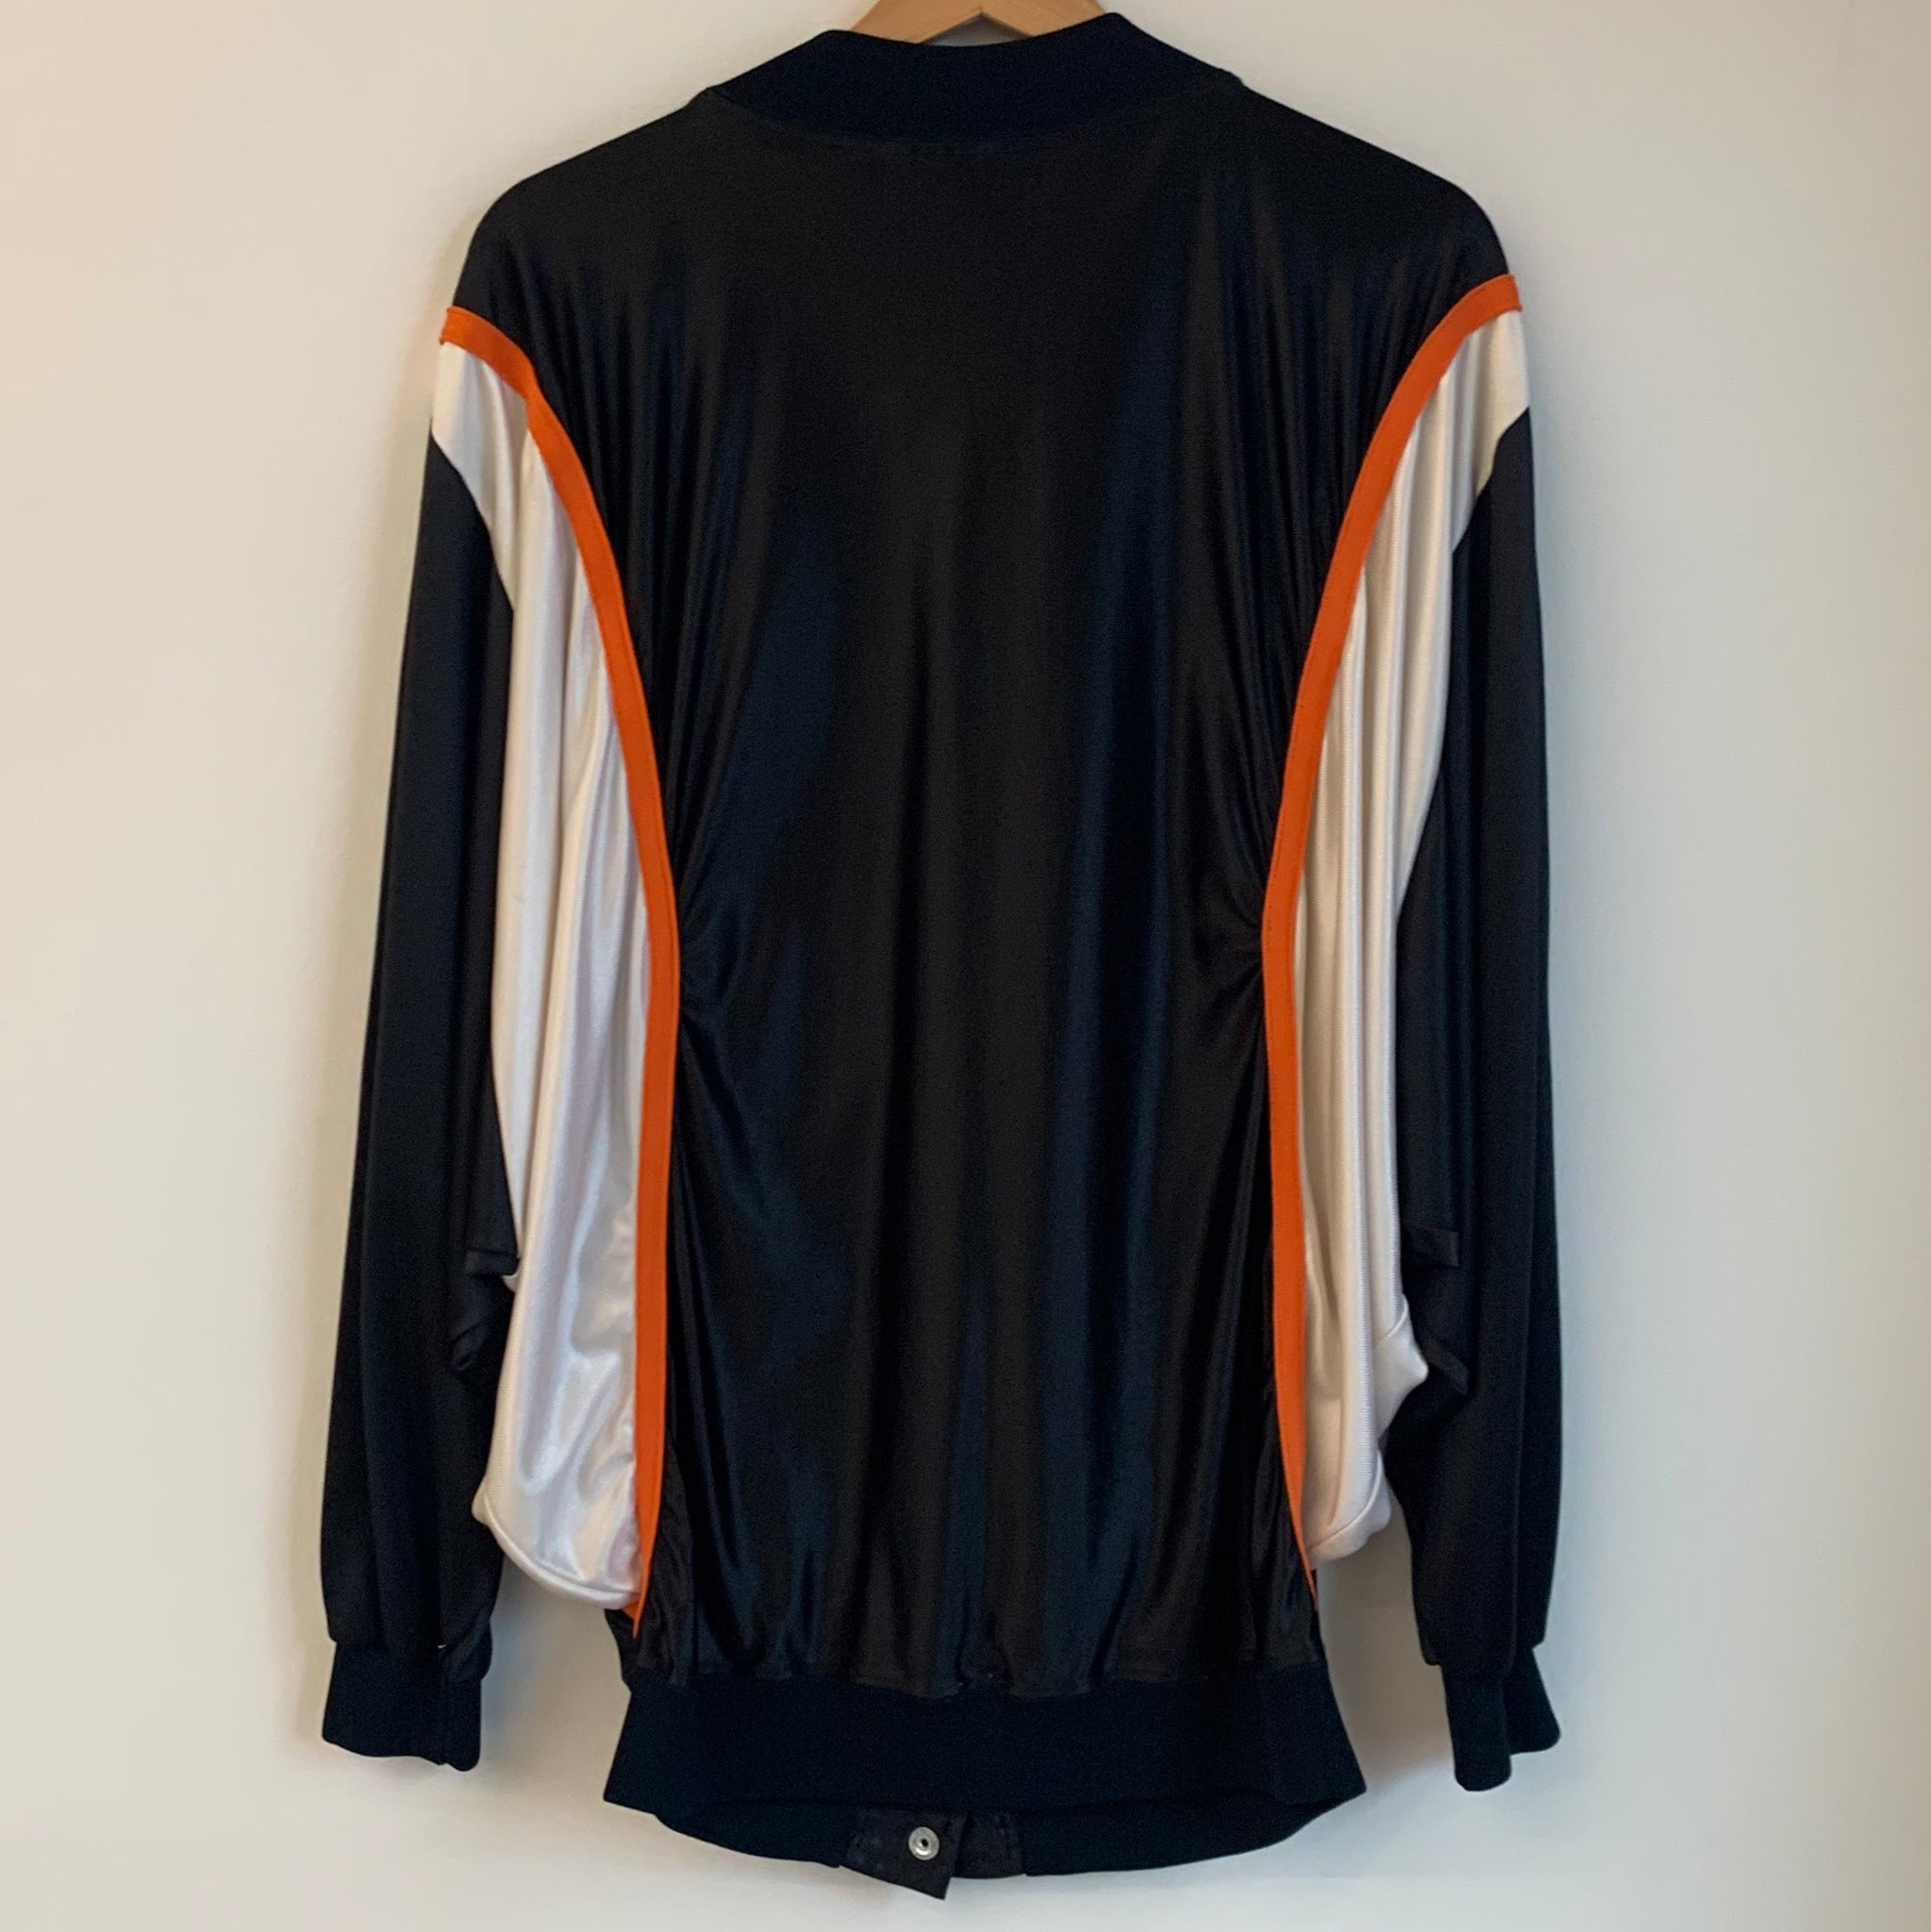 Oregon State Beavers Team-Issued Basketball Warmup Jacket